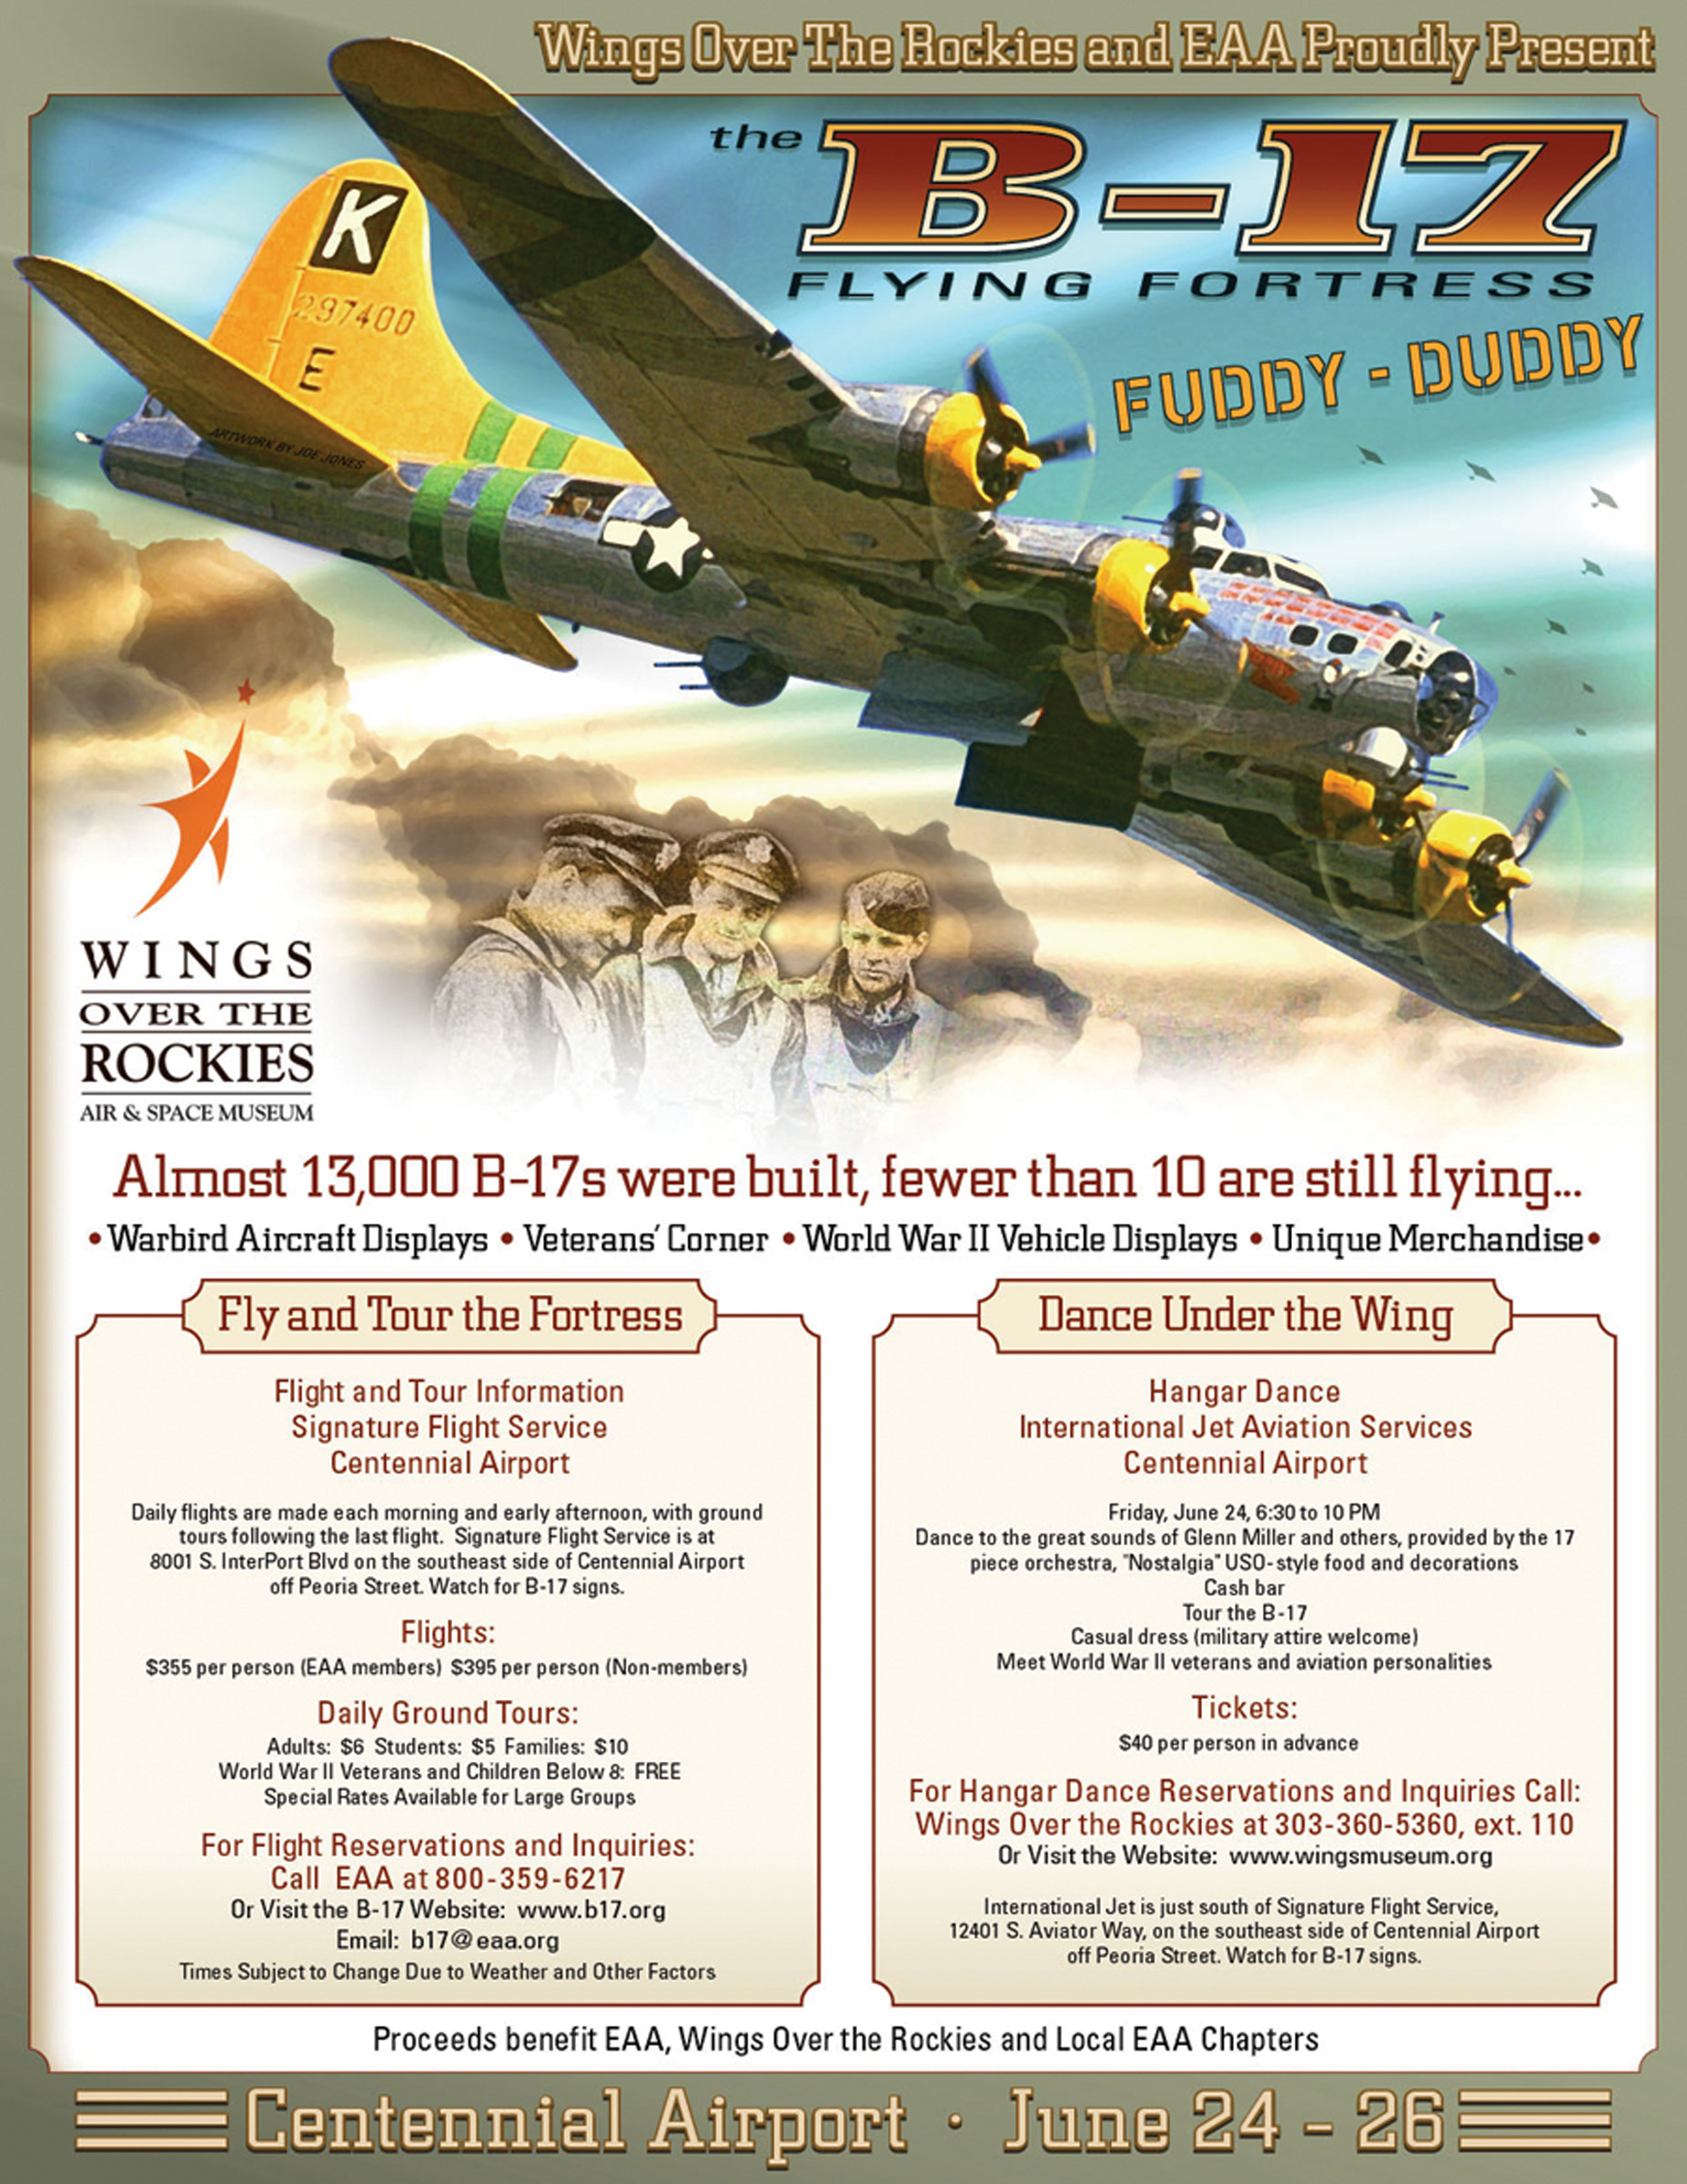 Wings Over the Rockies to Host B-17 at Centennial